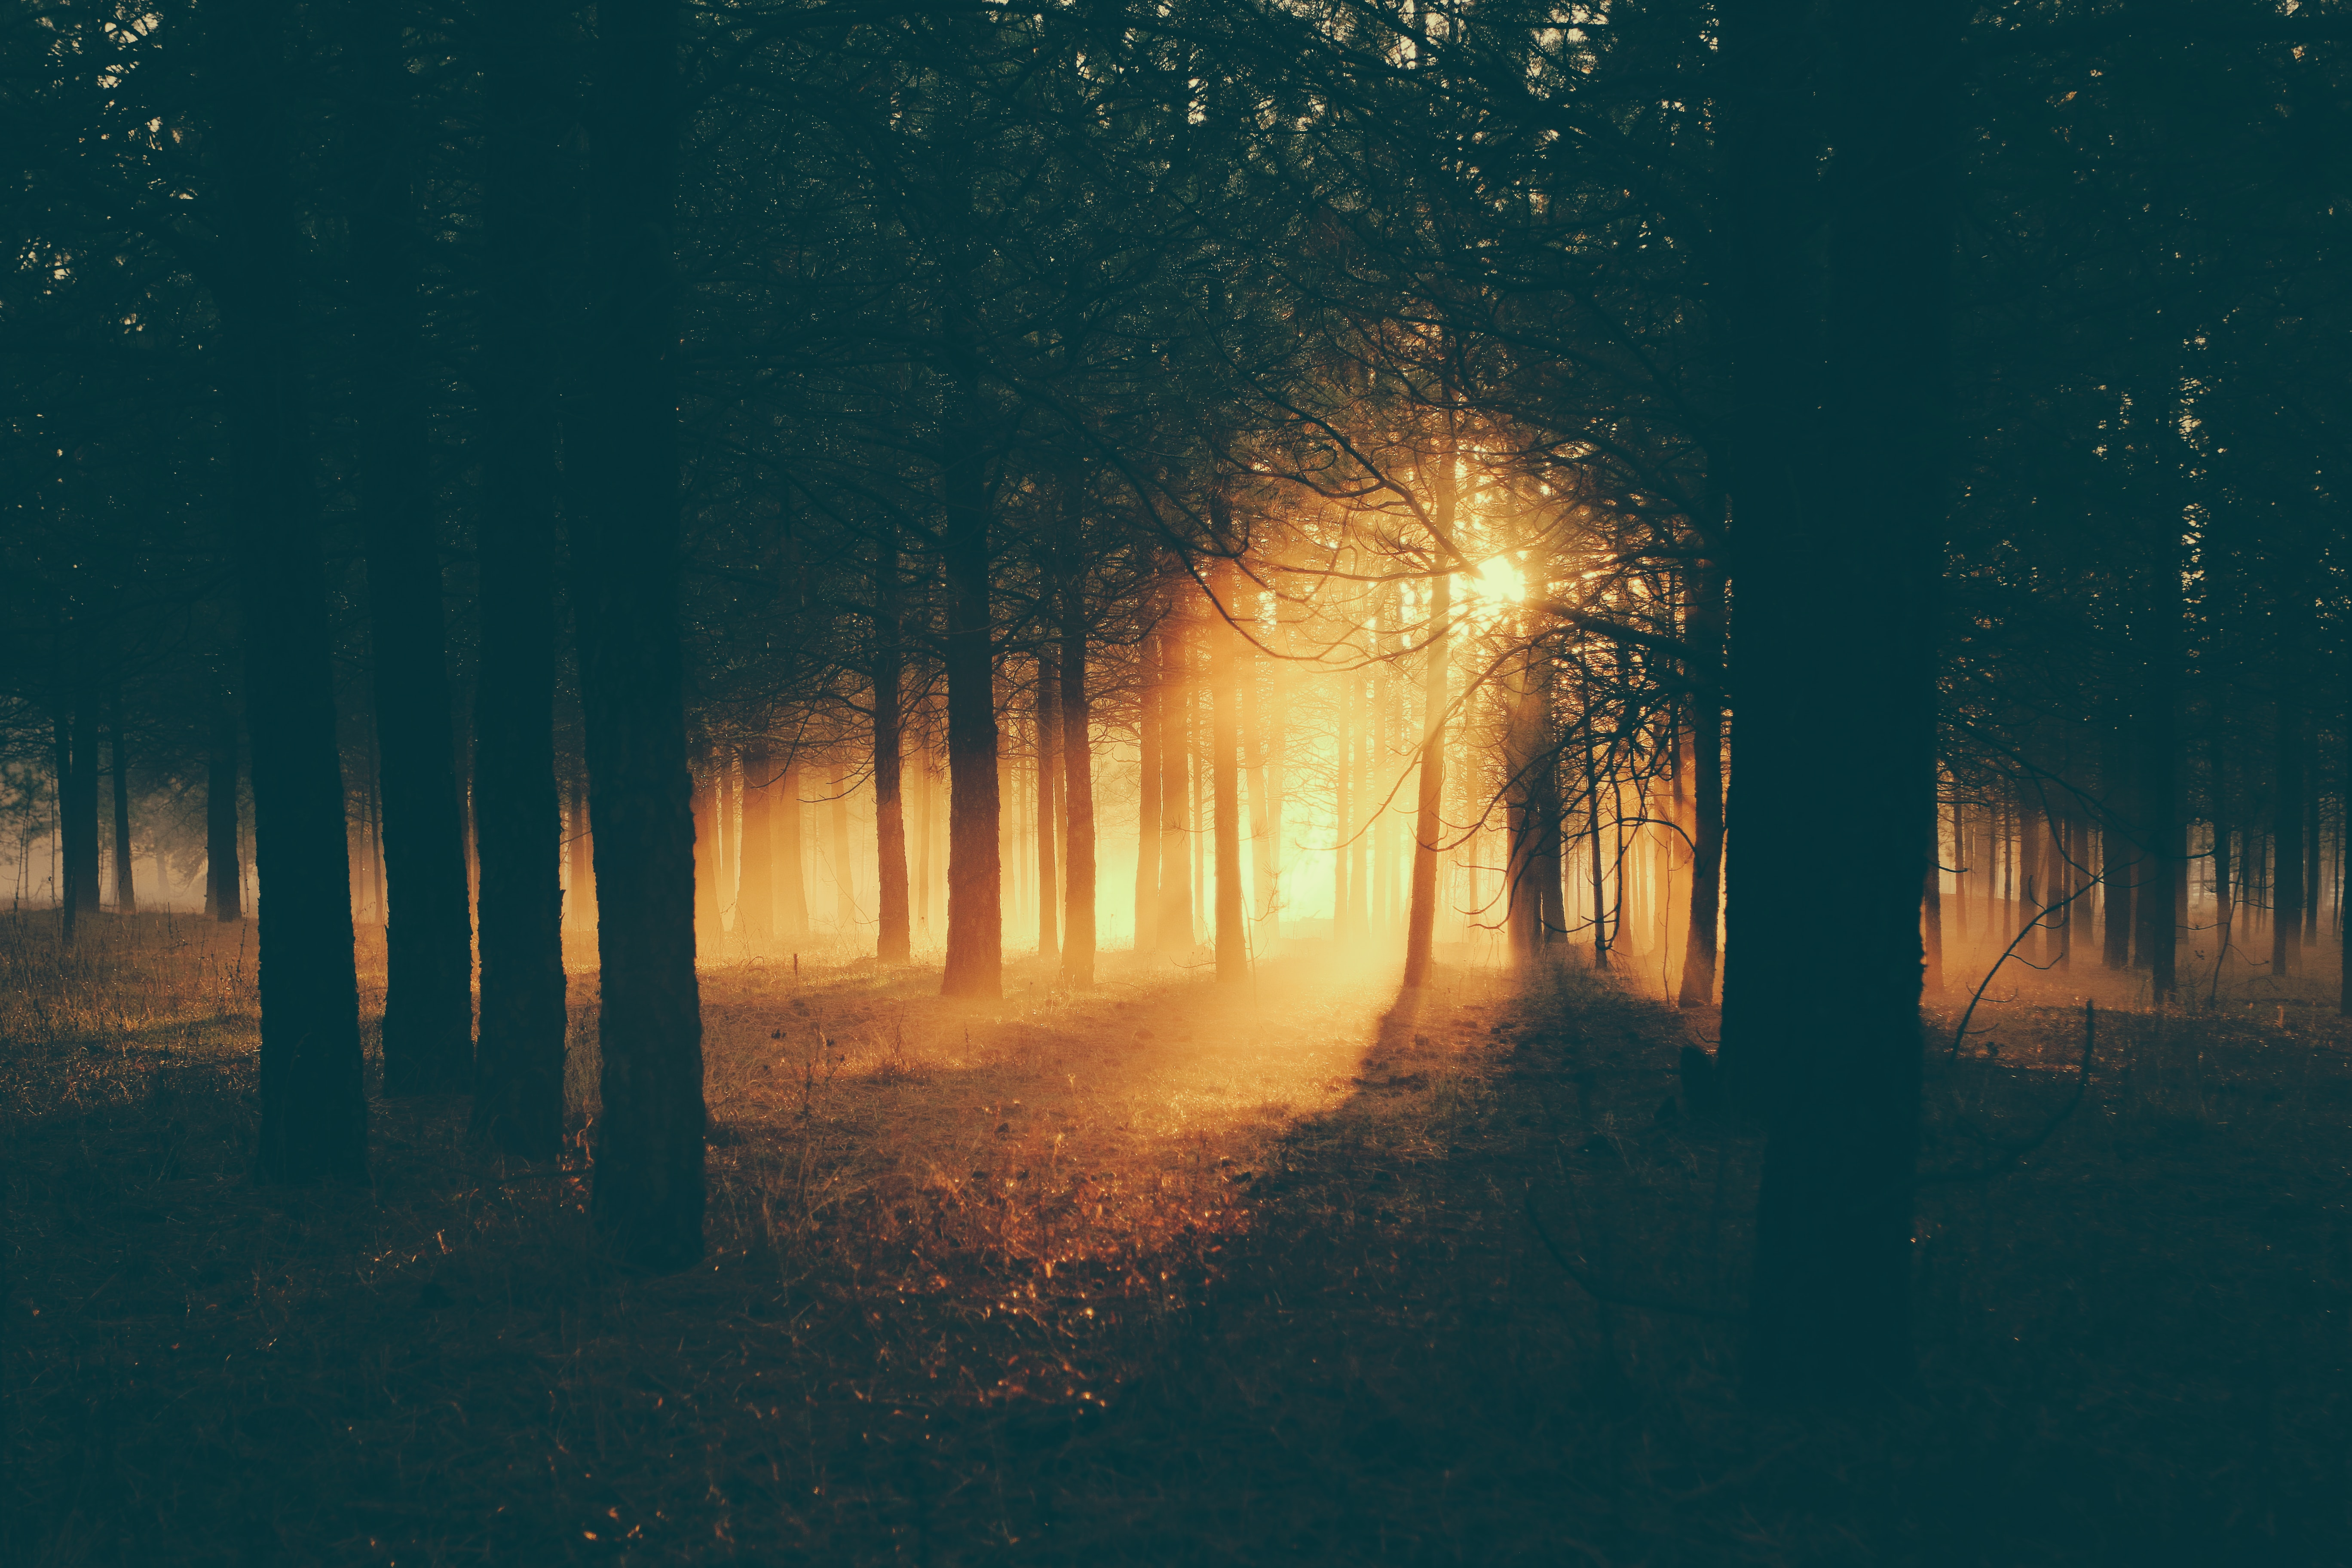 130085 Screensavers and Wallpapers Twilight for phone. Download Twilight, Dark, Forest, Fog, Dusk, Sunlight pictures for free